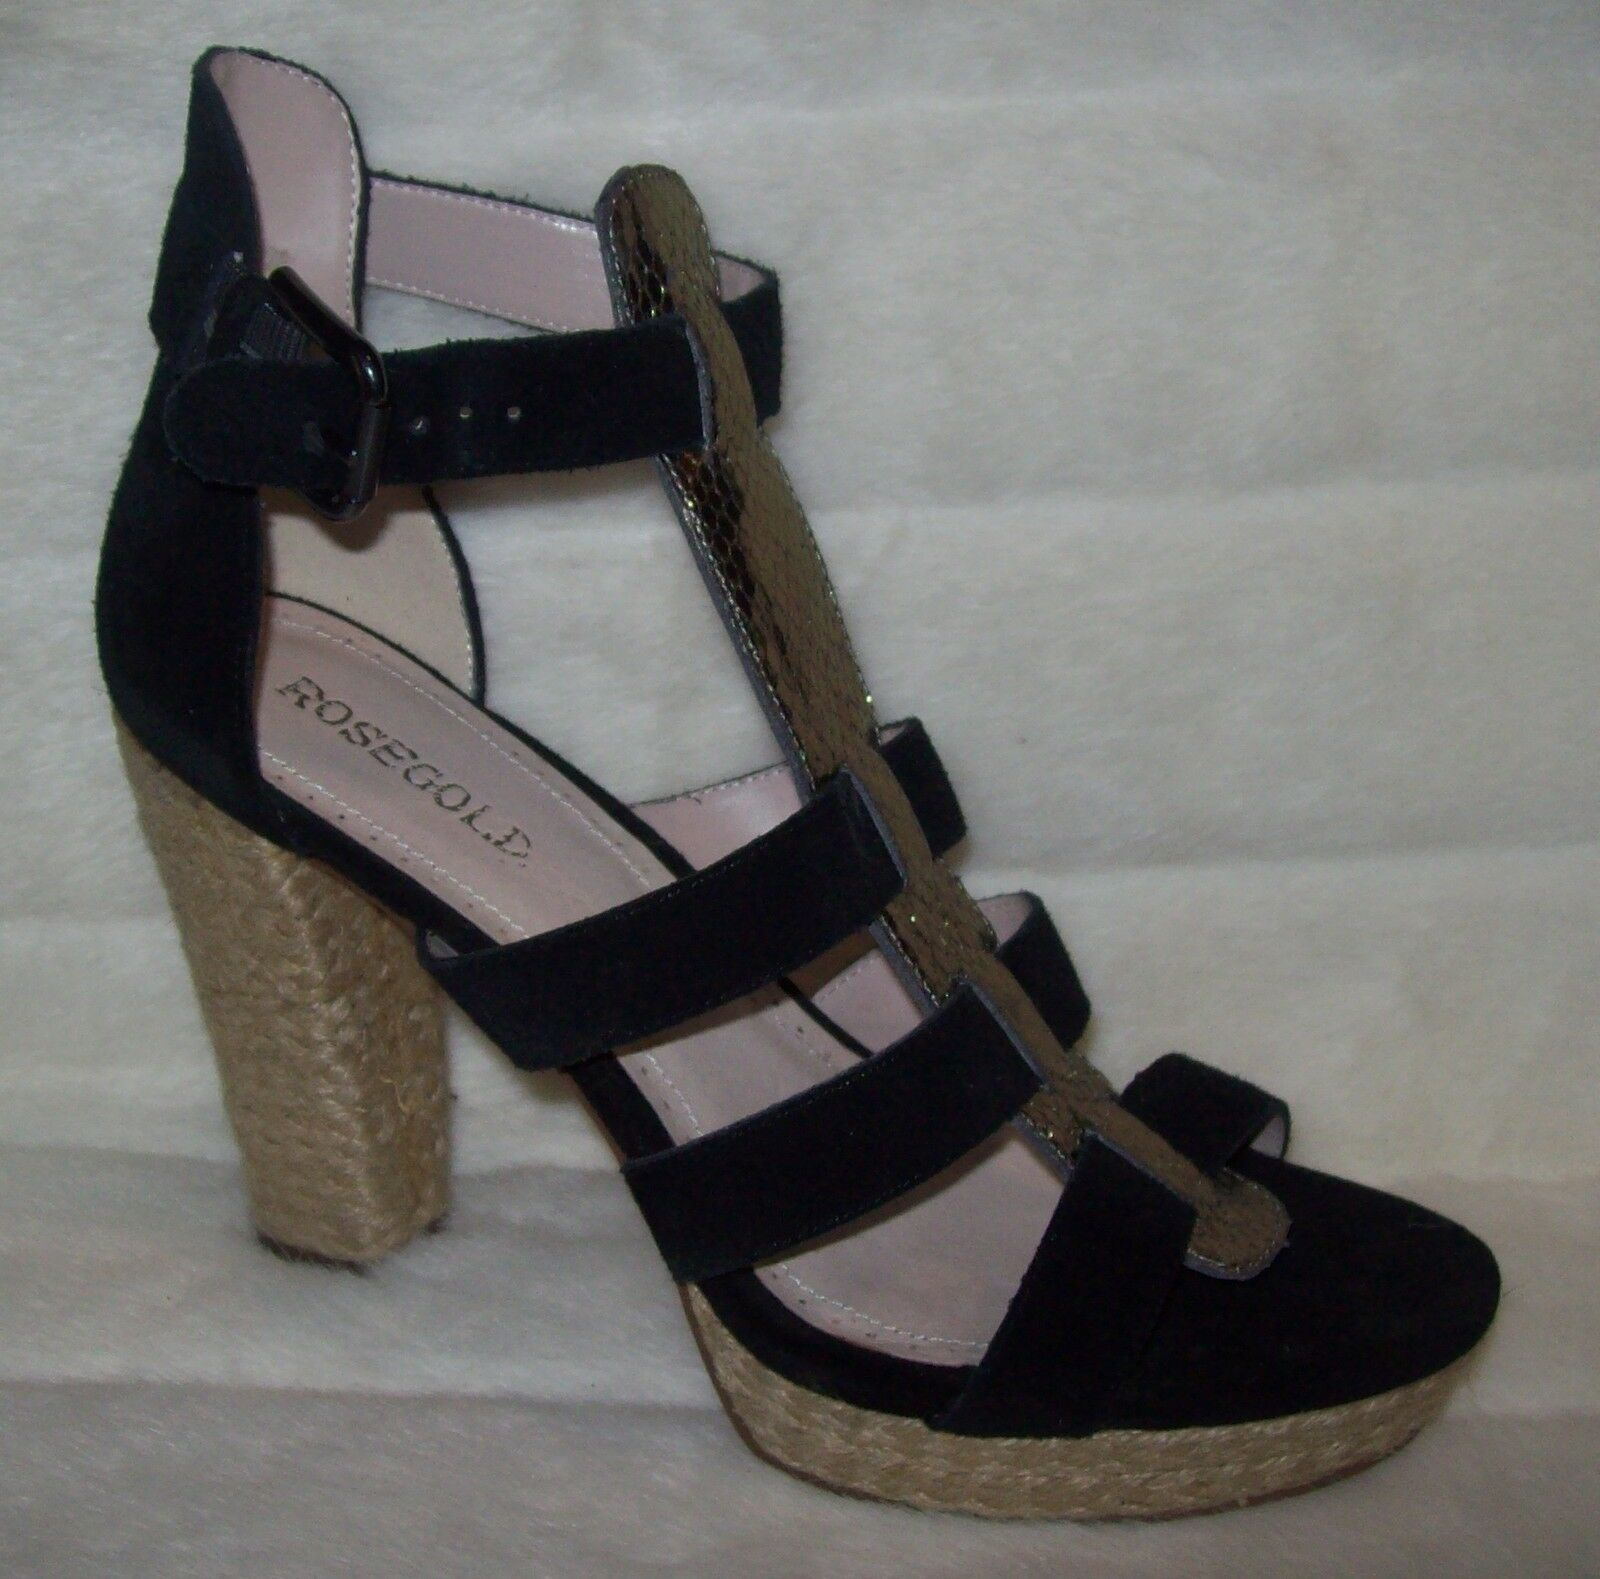 Rosegold Pana Platform Buckle Closure Platform Pana Heels Sandales Schuhes 39.5 US 9.5 NEW be25e2